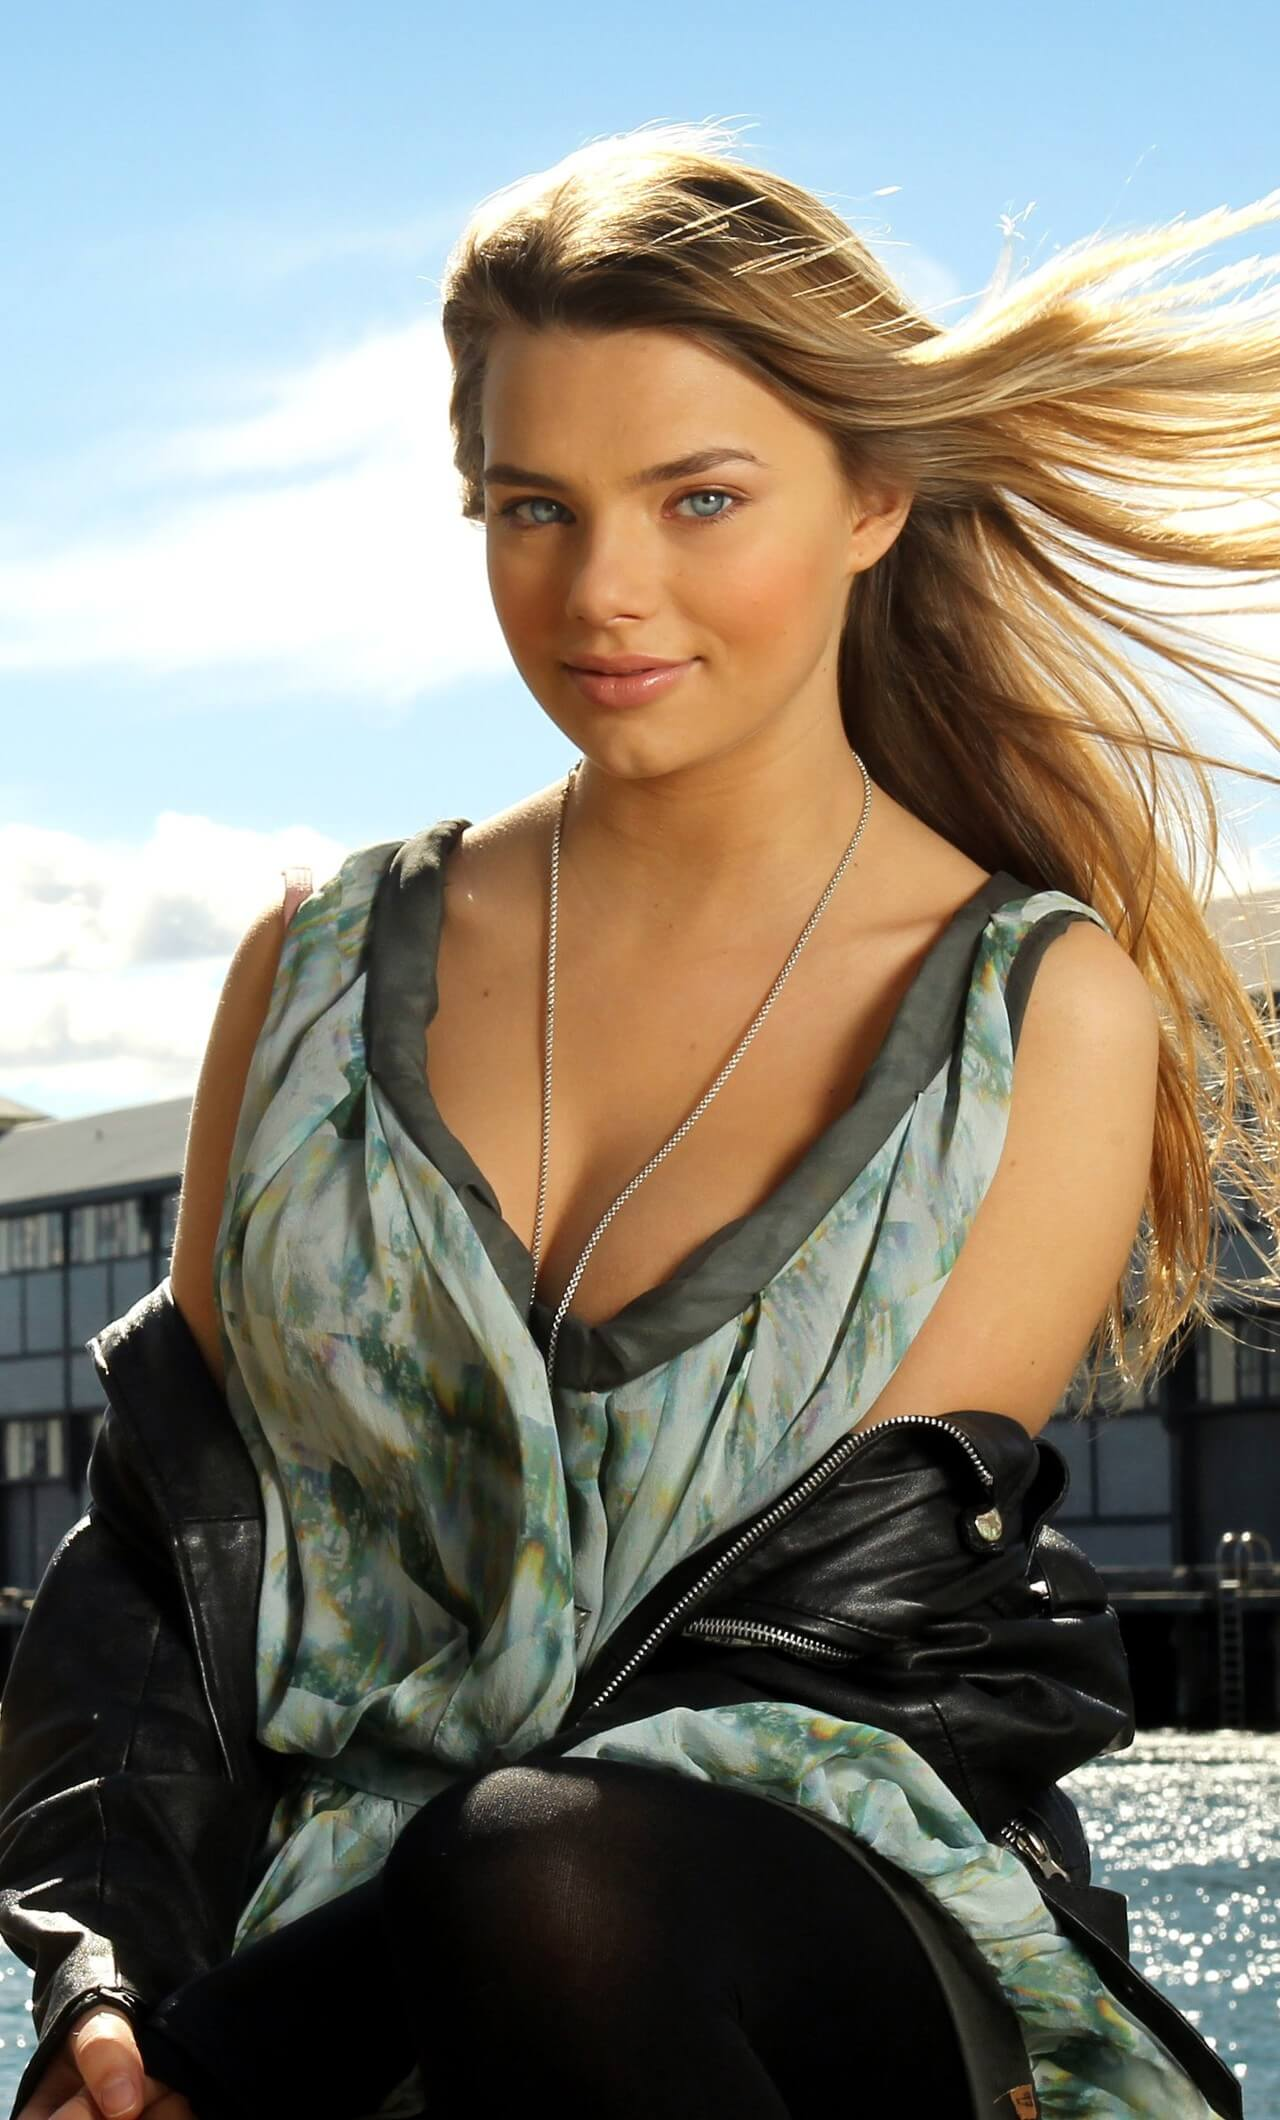 Indiana Evans hot busty picture